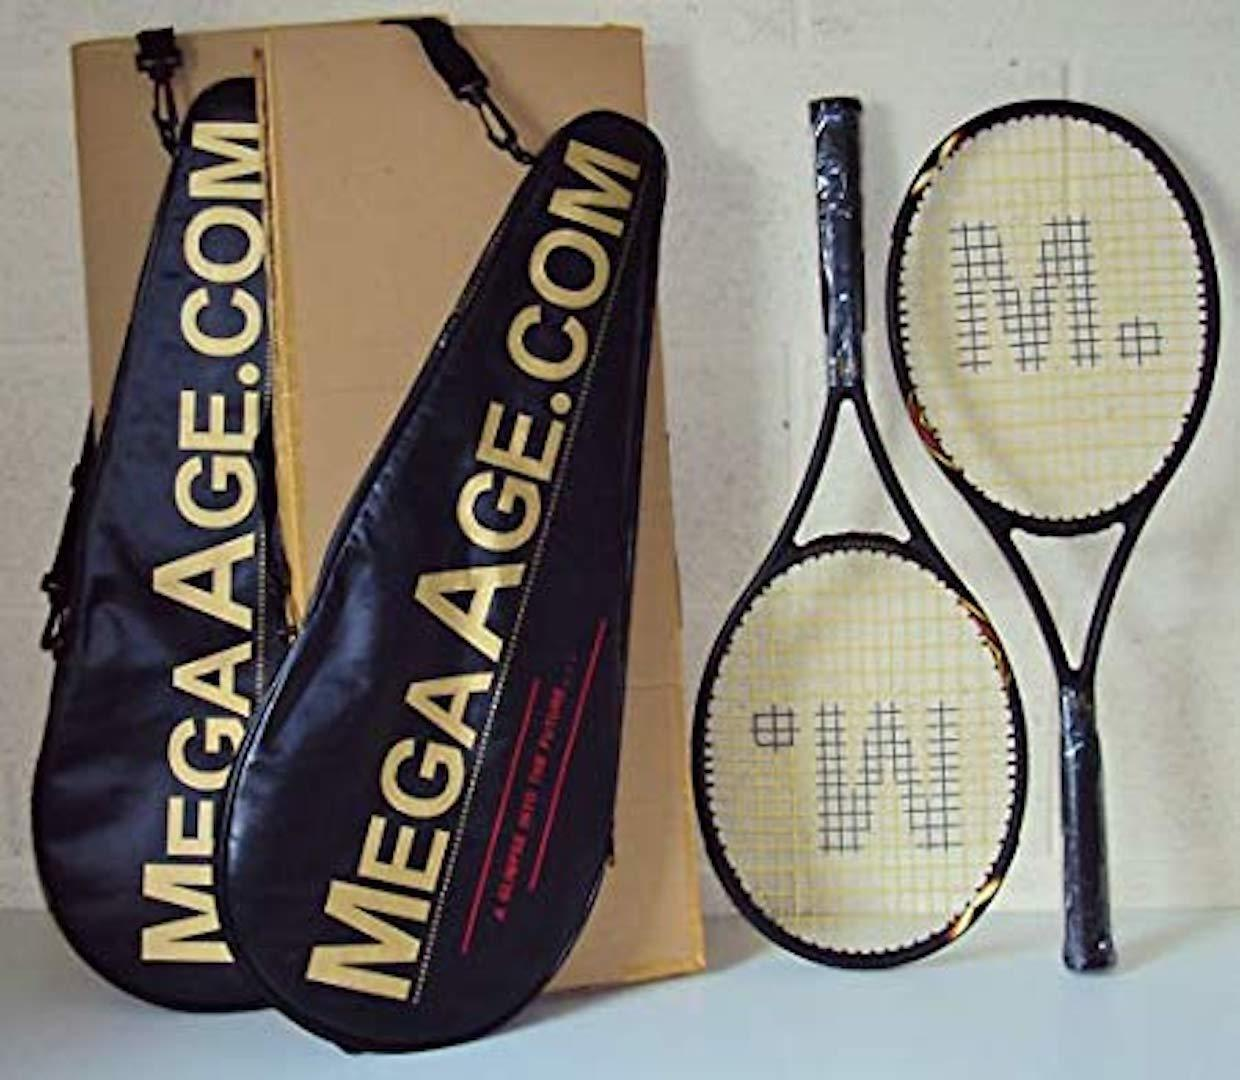 EXCELLENT VALUE TENNIS RACQUETS - 'MegaAge' - BRAND NEW - (USA made) - RRP-+